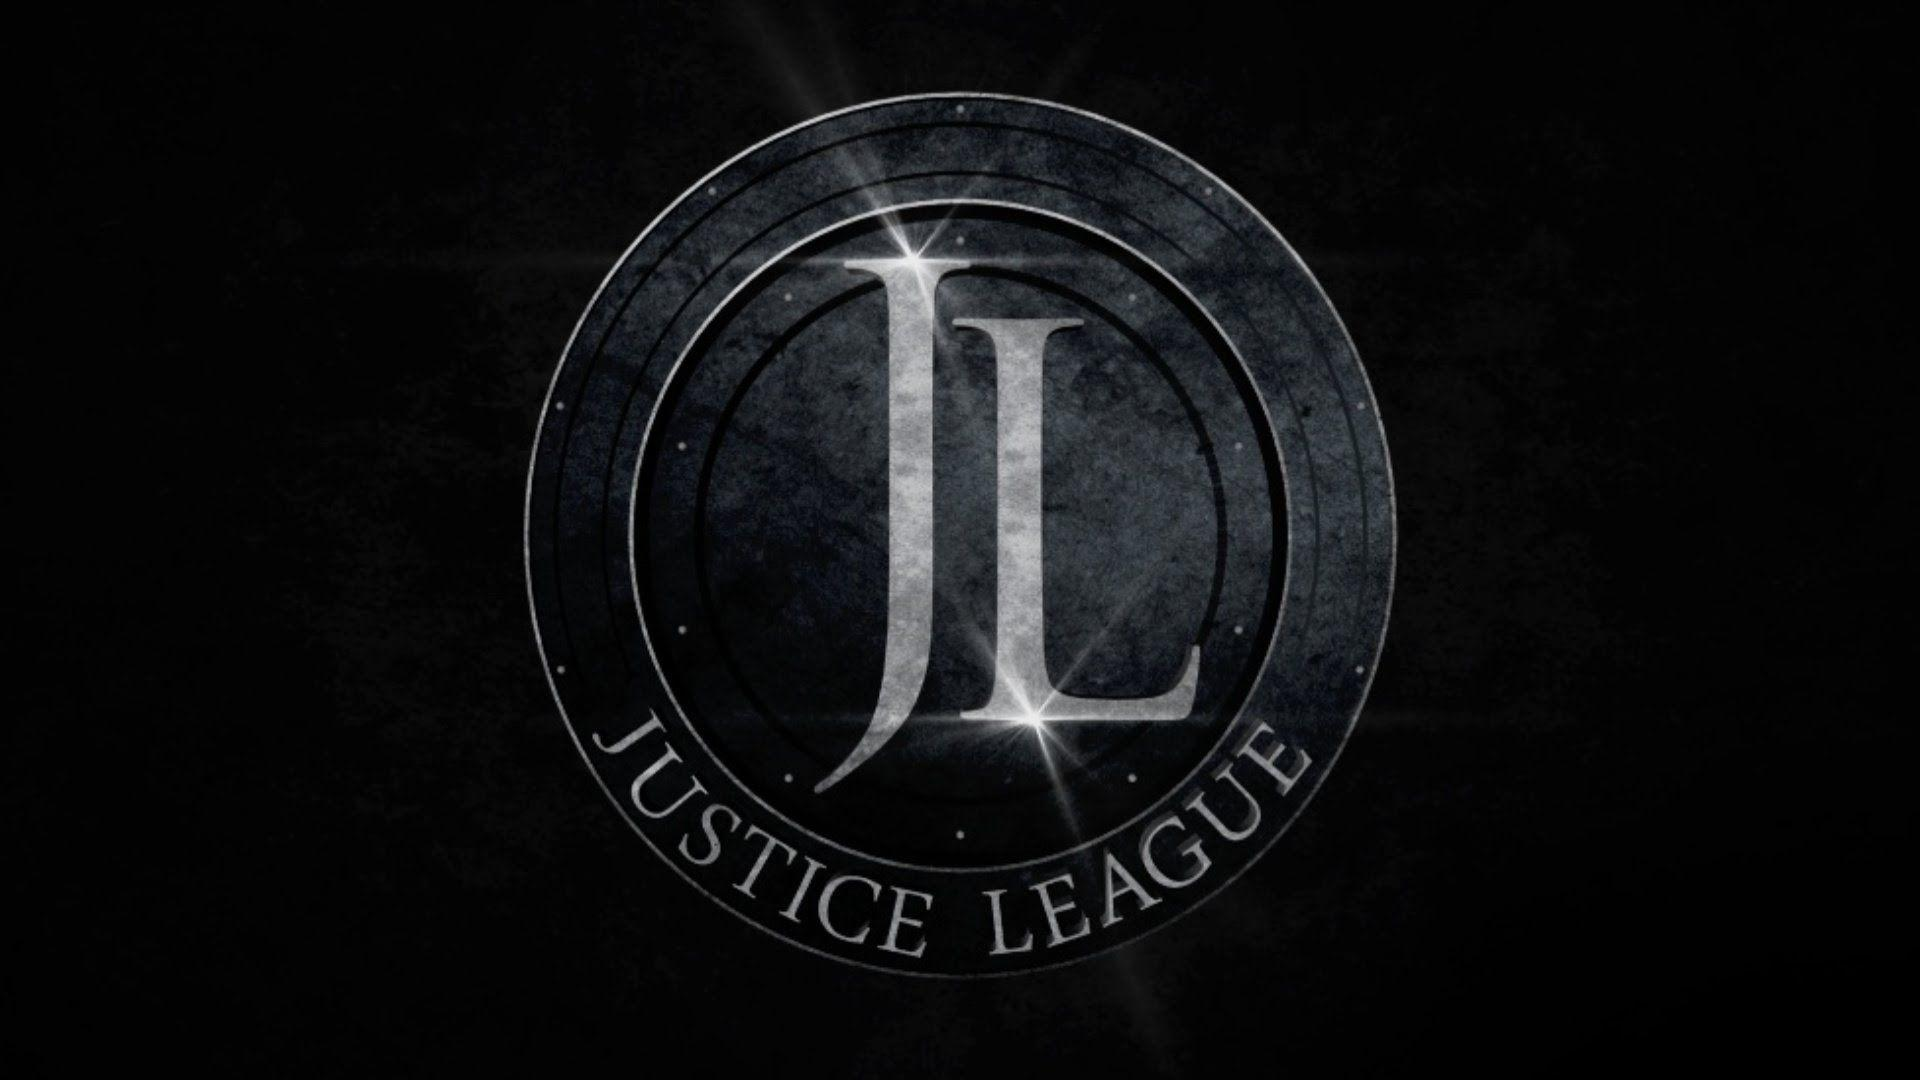 Logo Justice League Wallpapers HD - Wallpaper CaveJustice League Emblem